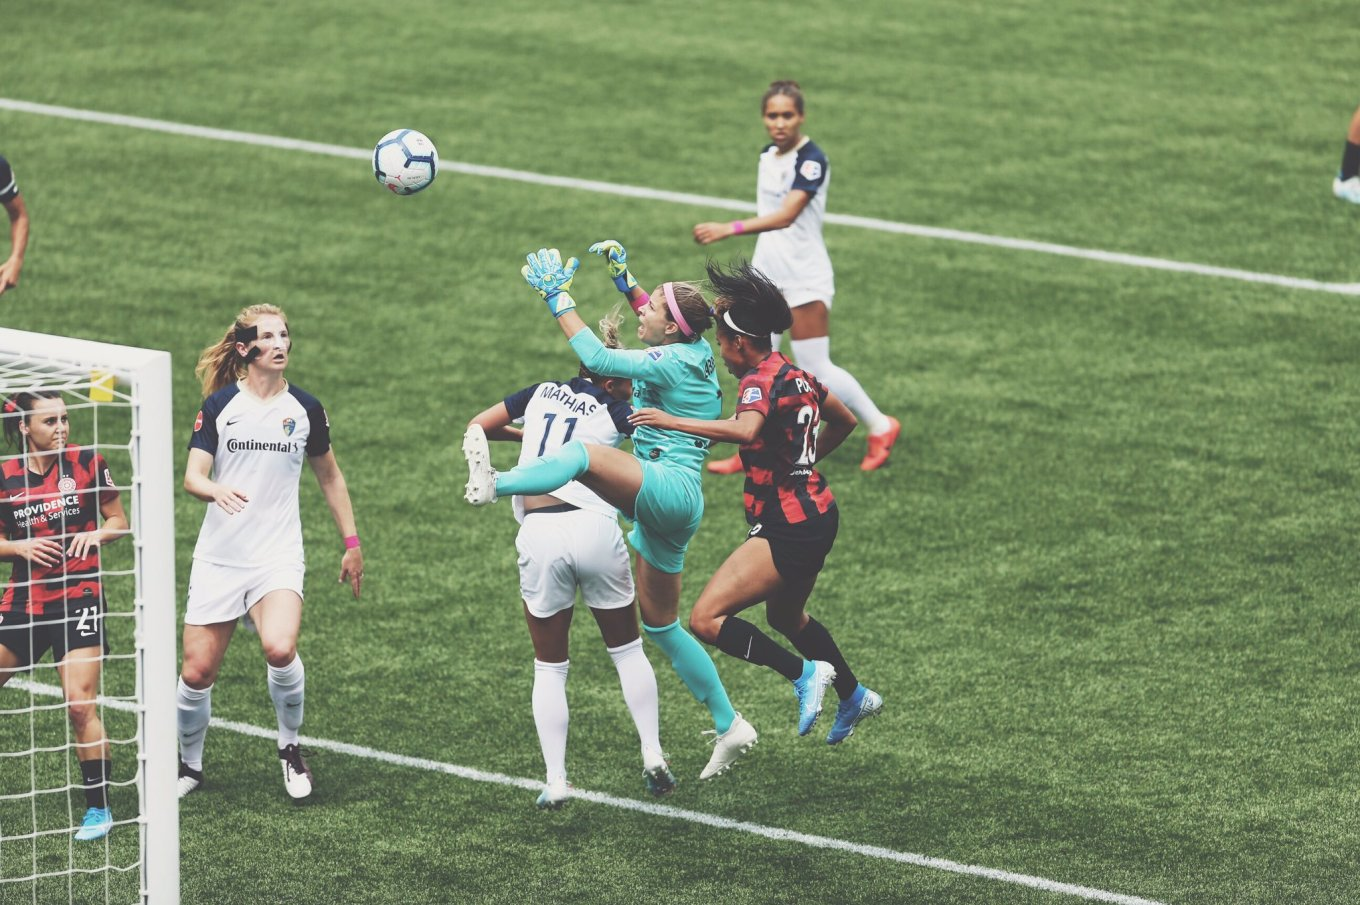 nc_courage_portland_thorns_week17_nwsl